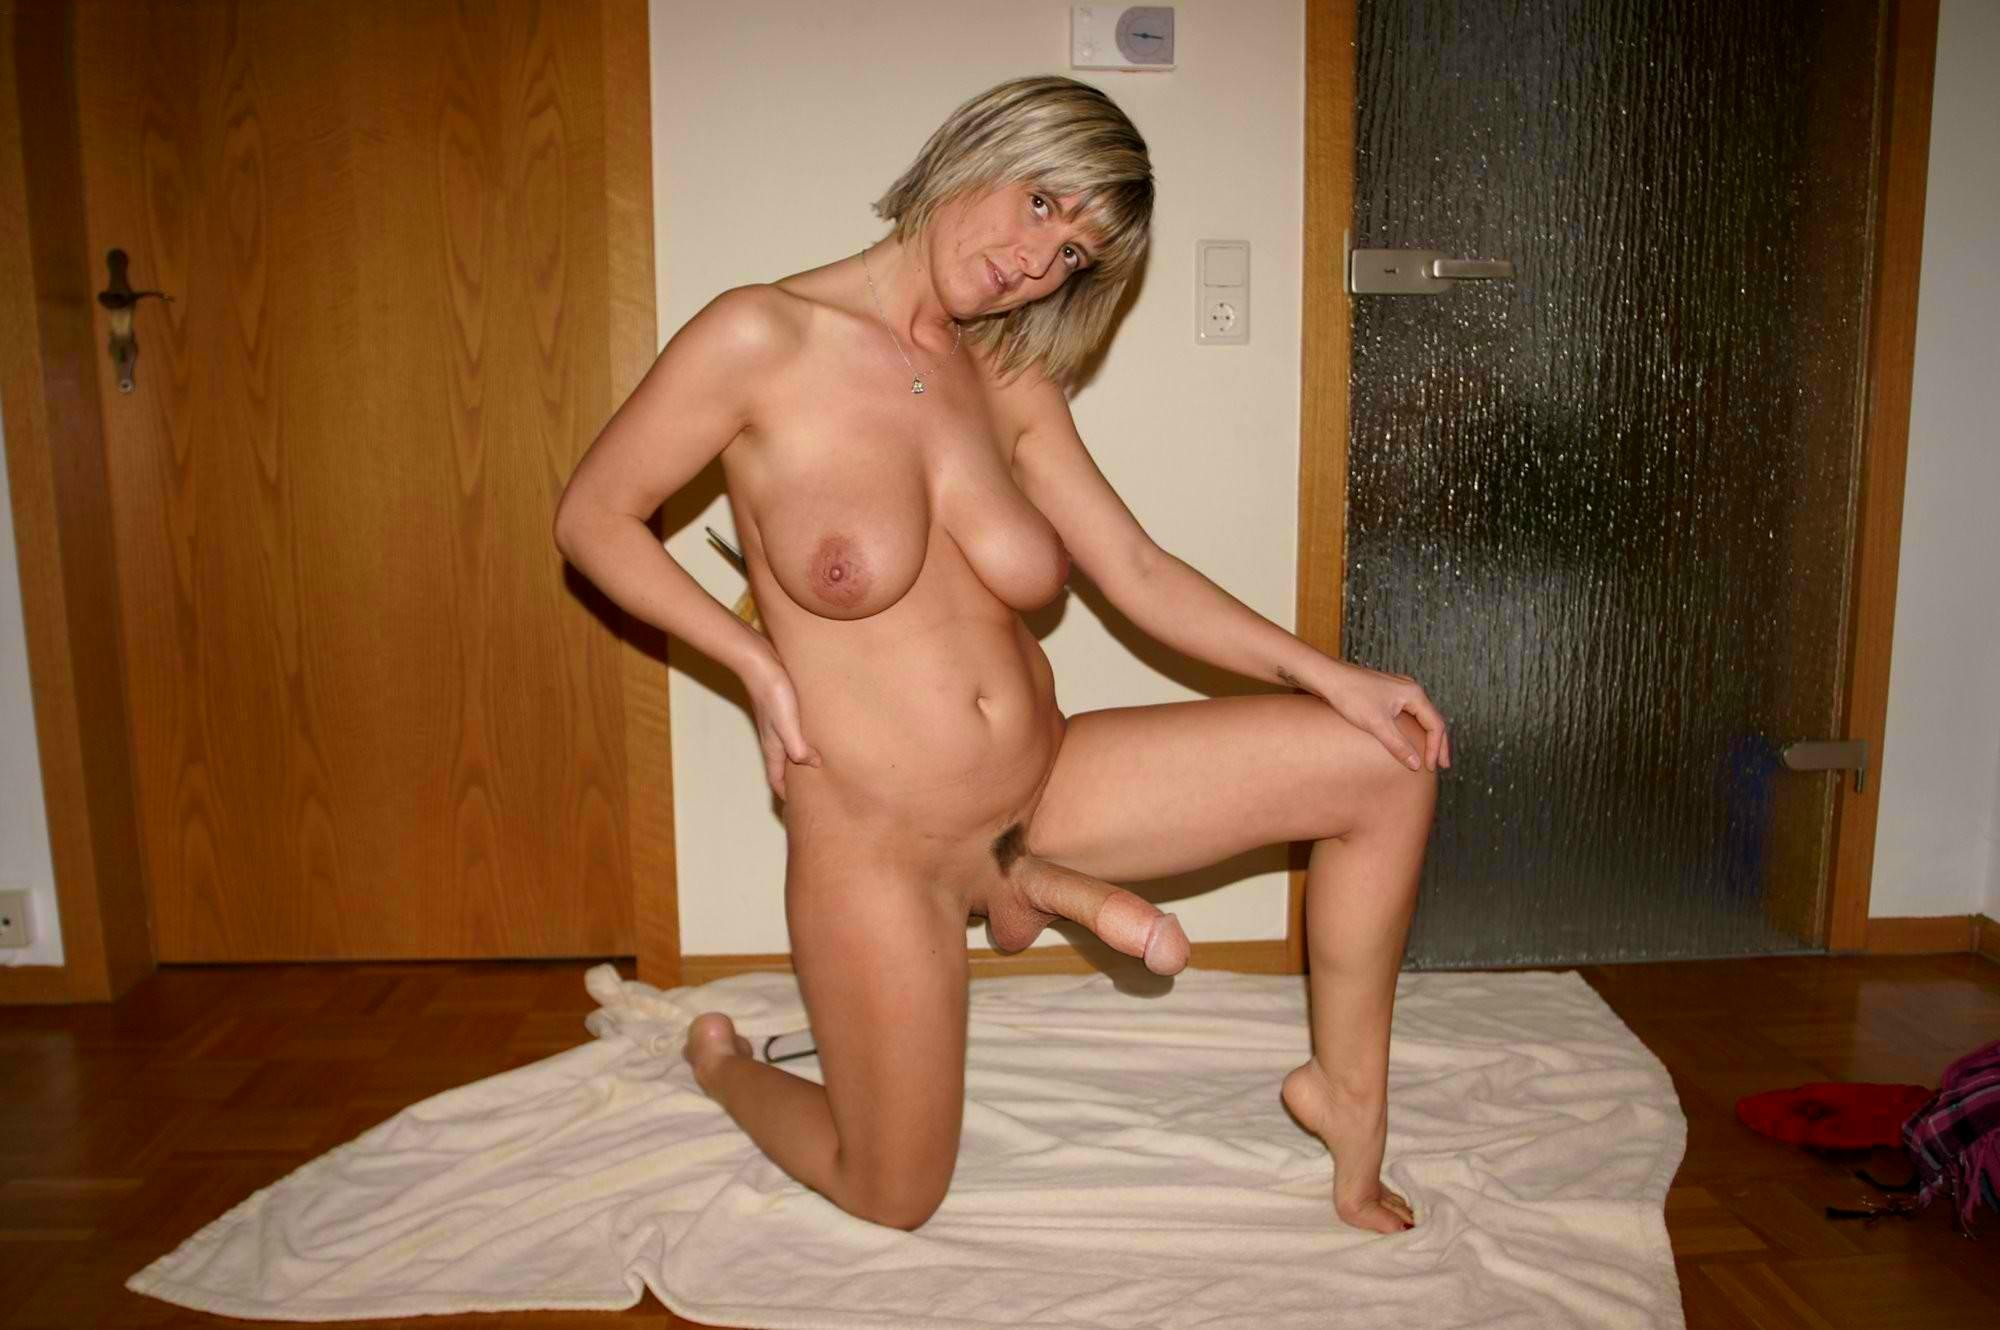 hot nude shots of girls